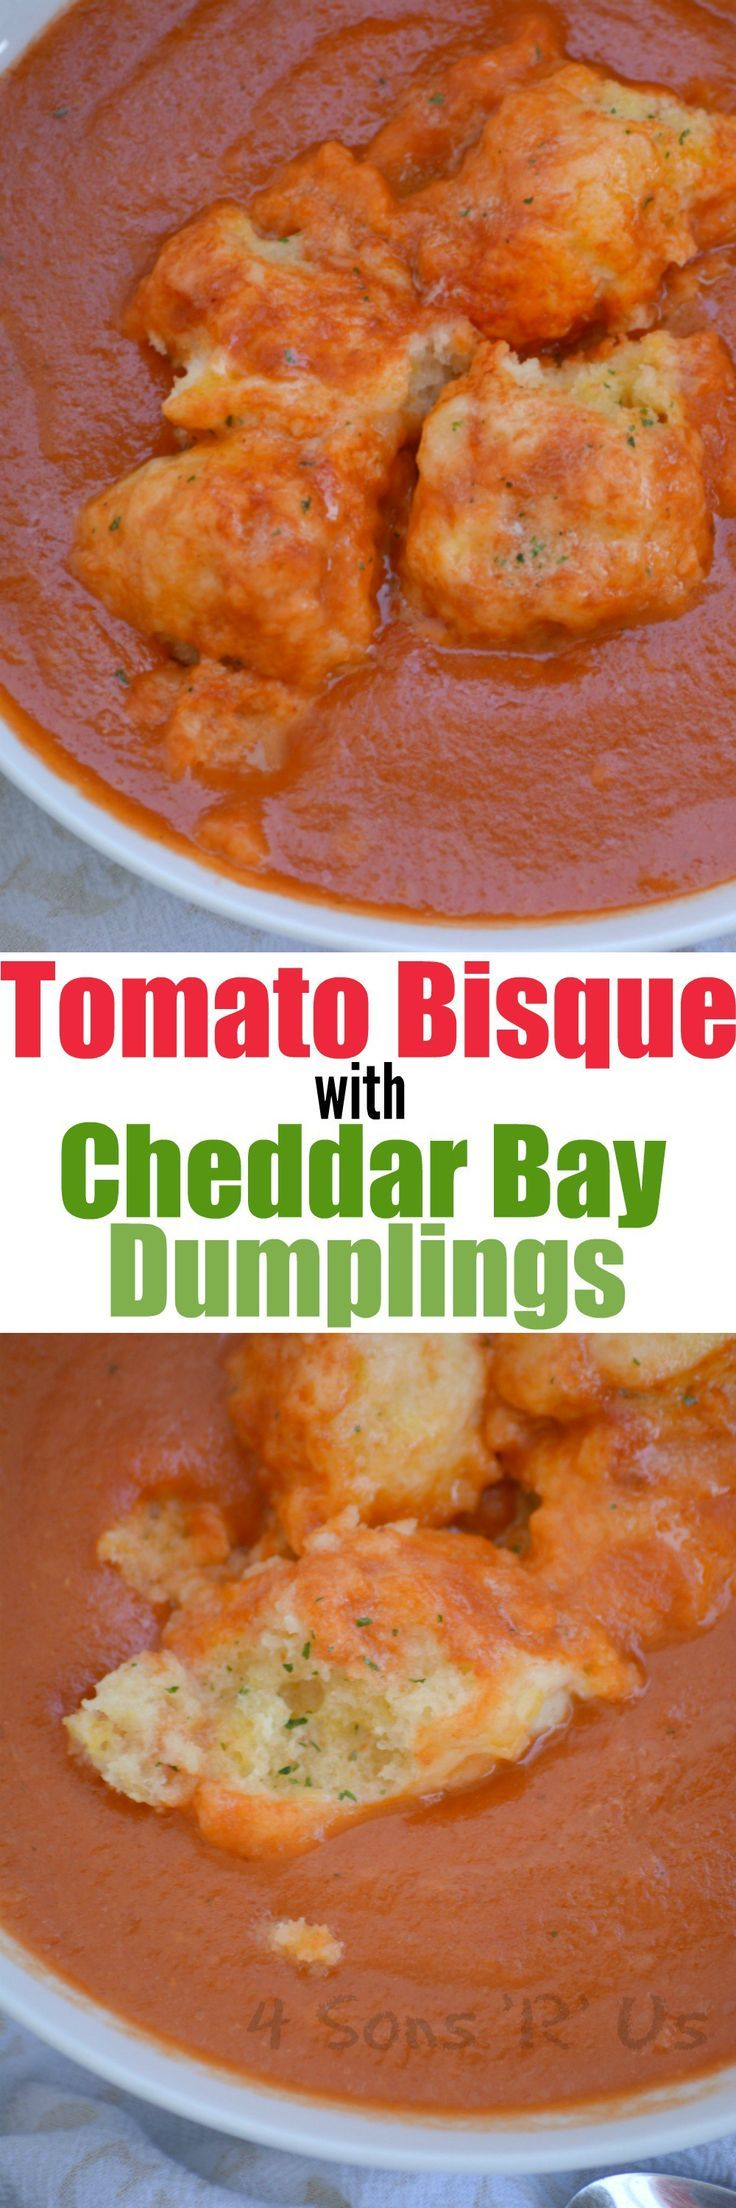 This yummy Tomato Bisque with Cheddar Bay Dumplings is the soup lovers' dream come true. A rich, creamy tomato bisque is studded with buttery Cheddar Bay style dumplings for a new twist on on a couple classics.